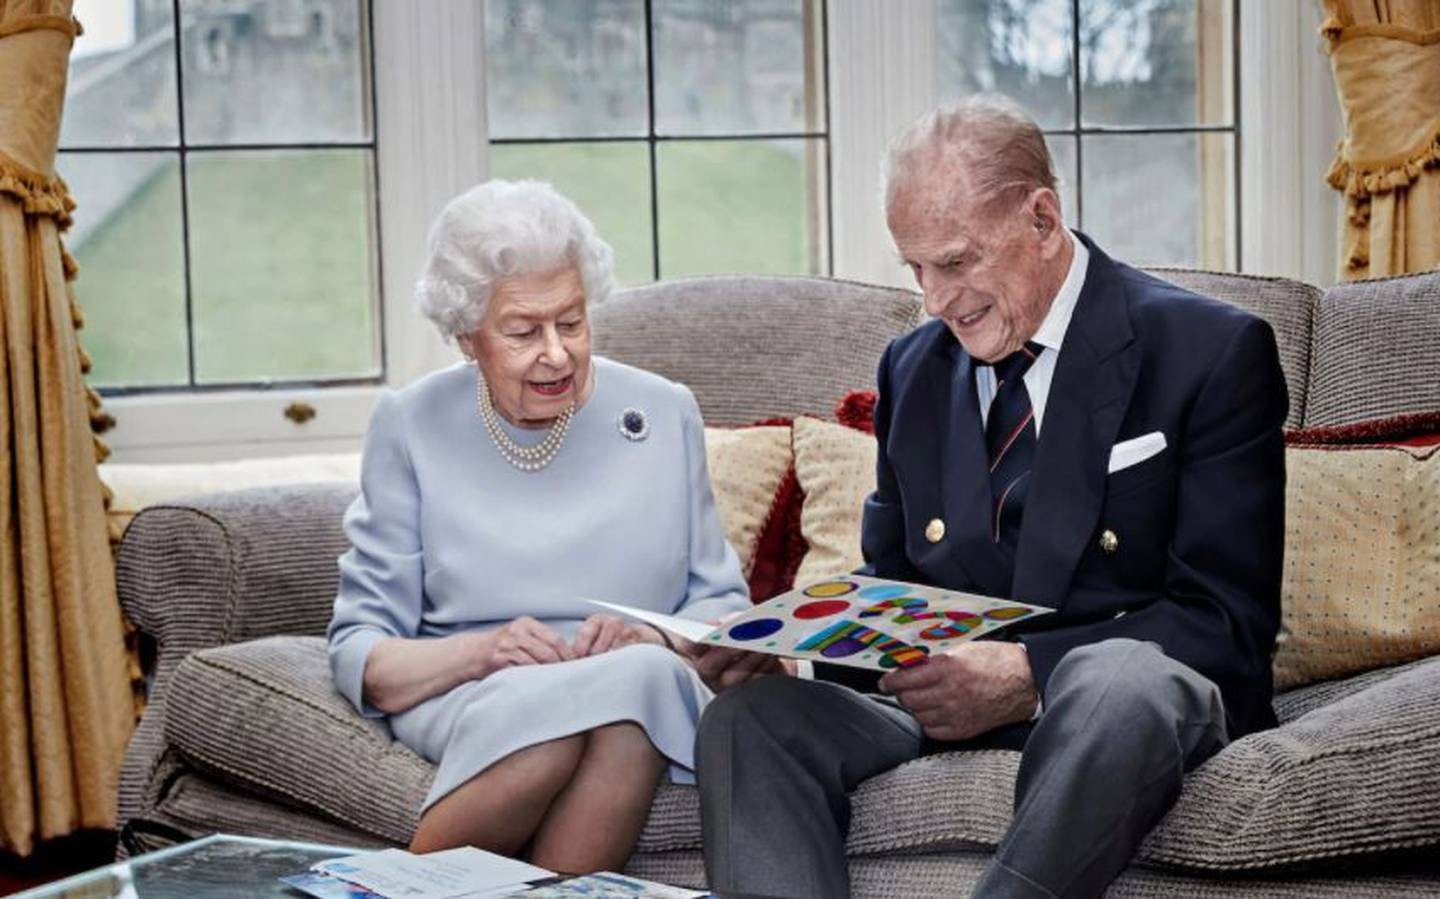 The official portrait of the Queen and Duke Of Edinburgh for their 73rd wedding anniversary in November last year.